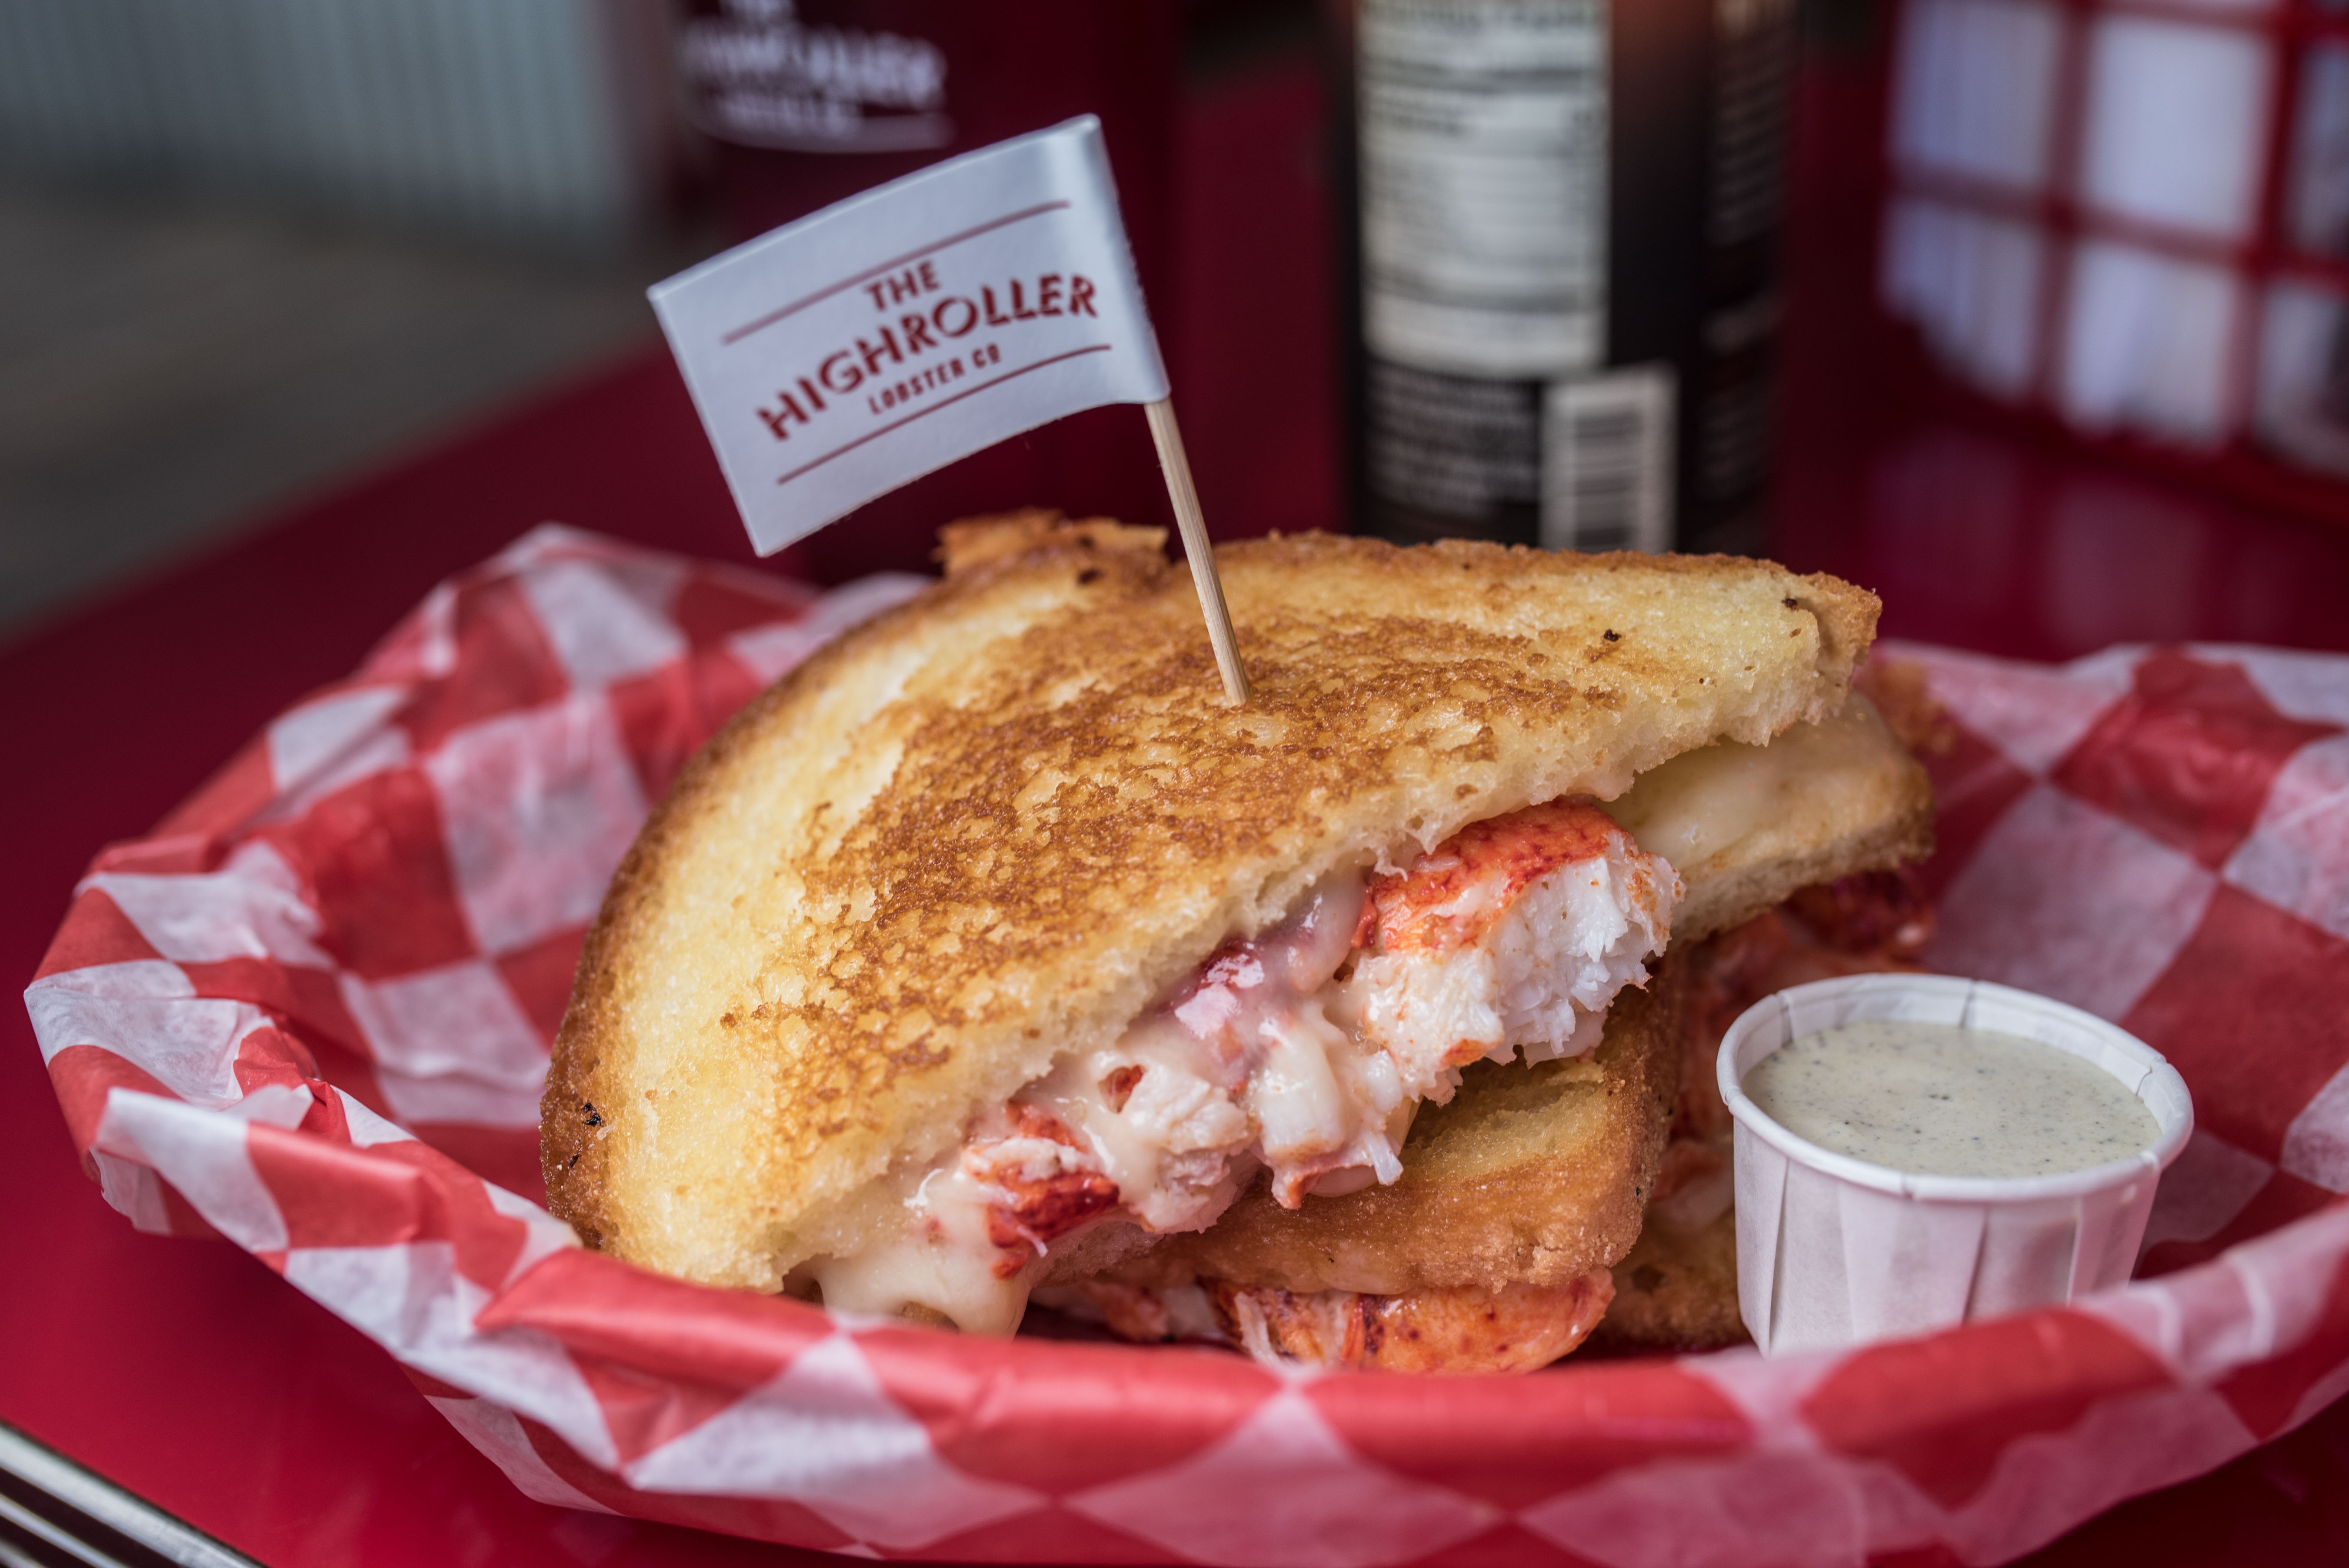 high roller lobster grilled cheese